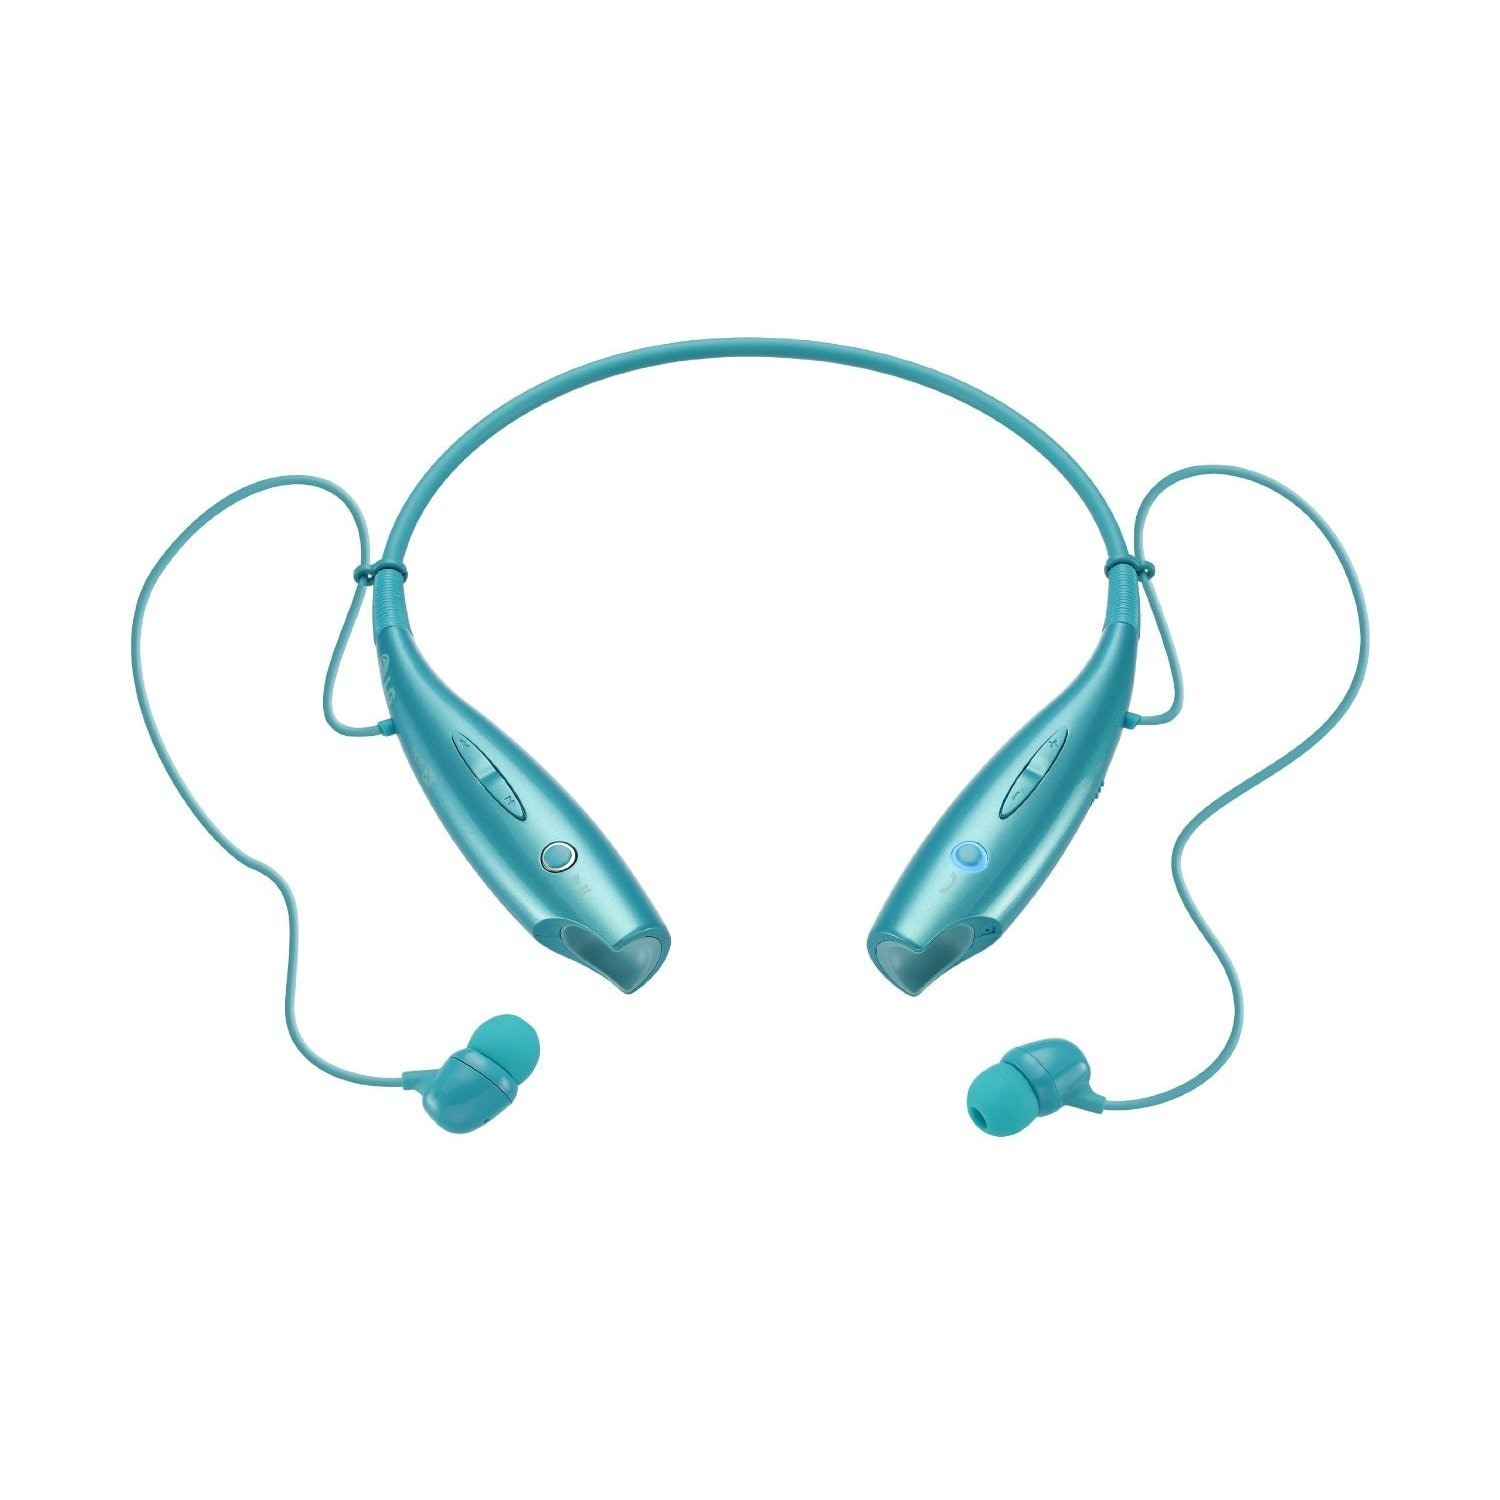 2b3a00ee571 Shop Lg Electronics Tone+ Hbs-730 Teal Bluetooth Headset Retail Packaging -  Free Shipping Today - Overstock - 10183299